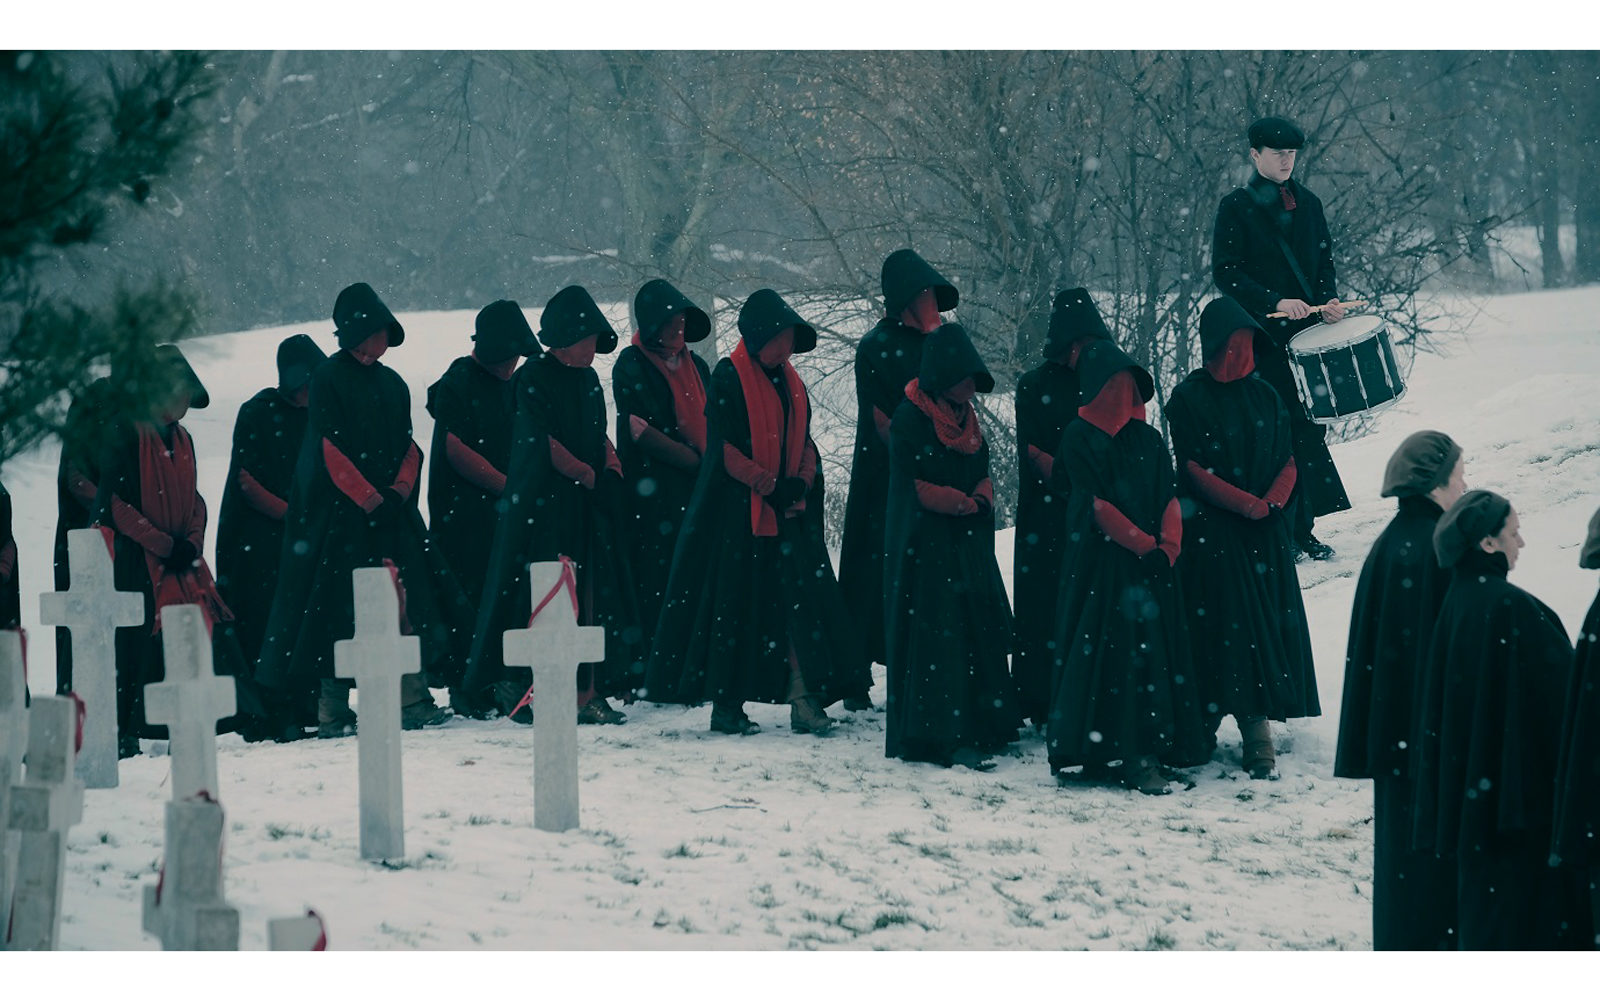 TIMVISION_TheHandmaidsTale2_26Aprile-(1)